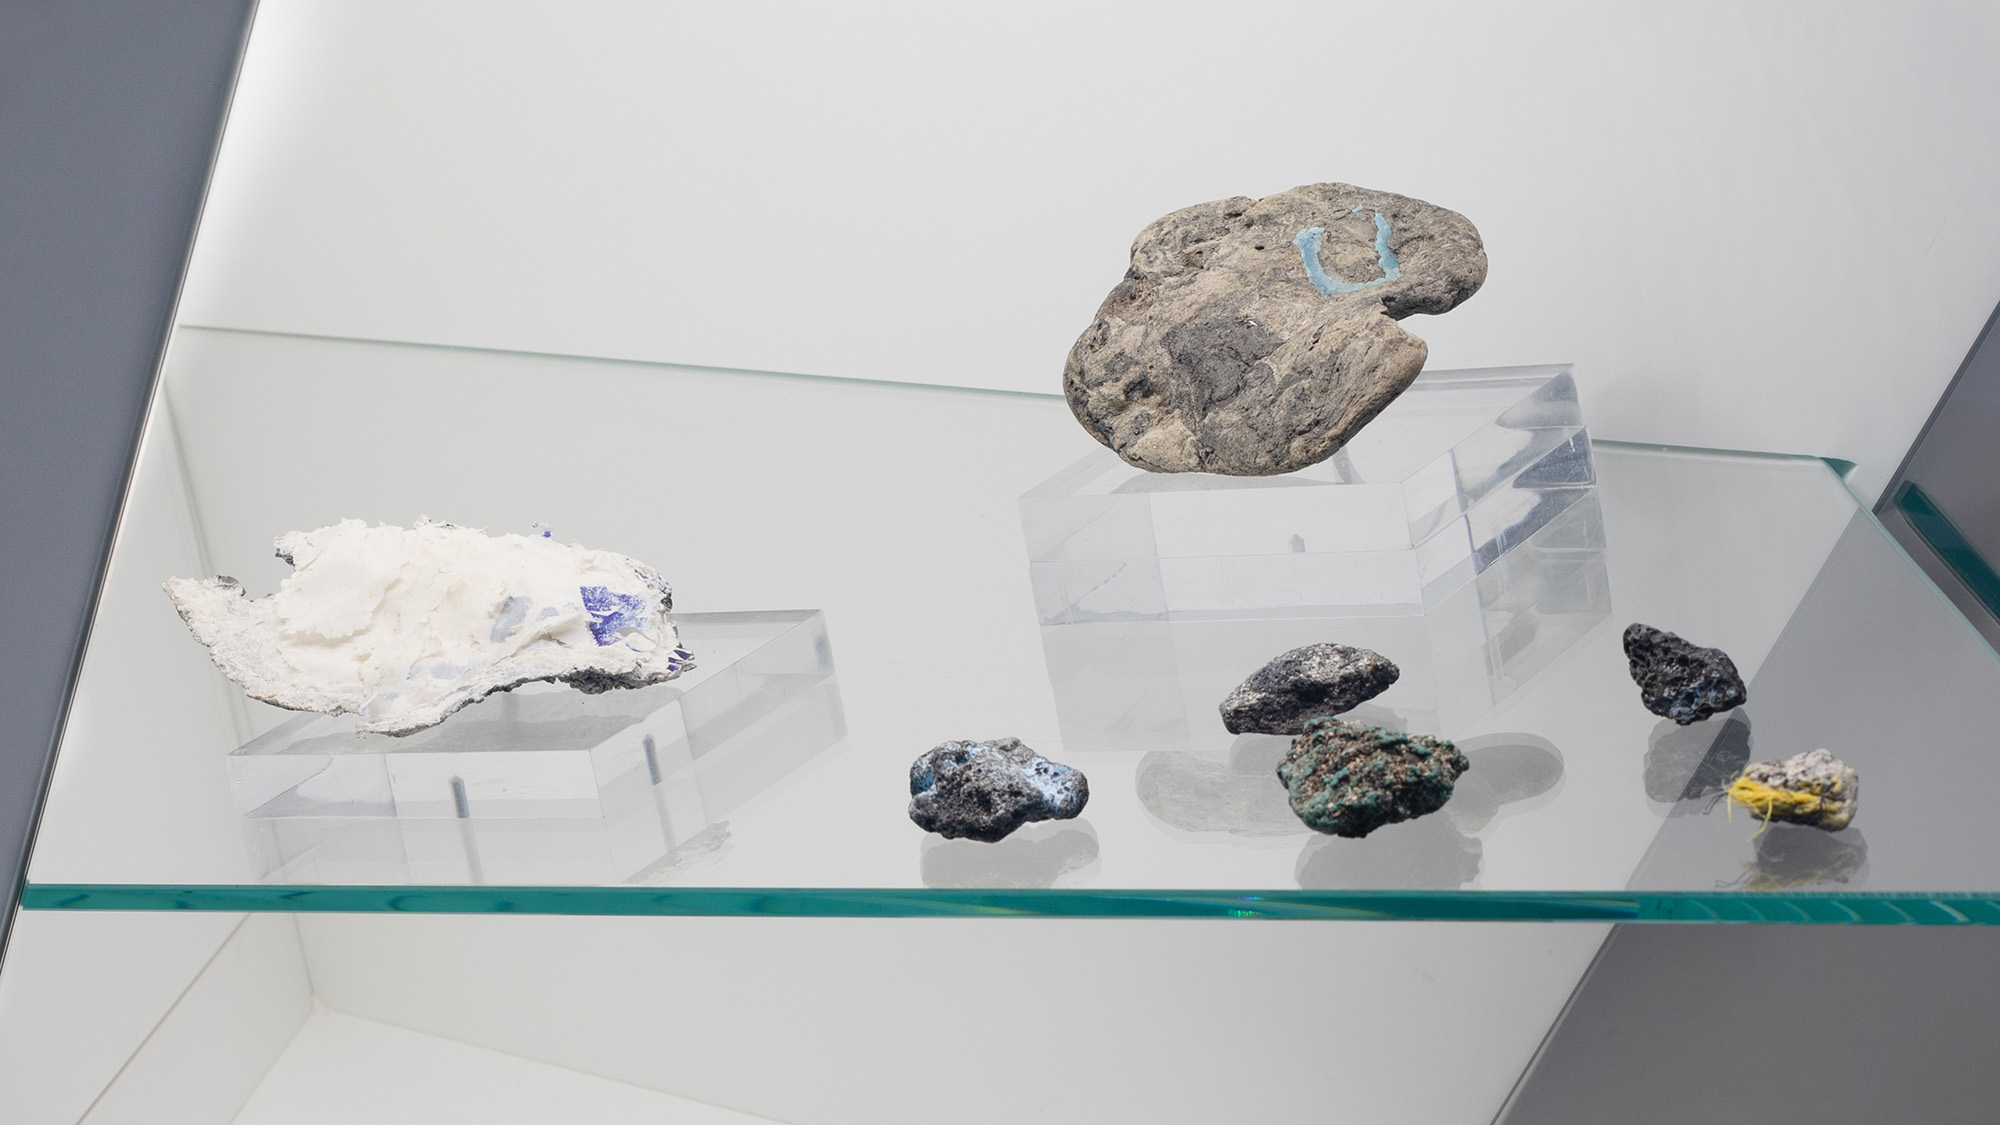 <i>Kelly Jazvac: Plastiglomerate</i>, installation view at the Eli and Edythe Broad Art Museum at Michigan State University, 2018. Photo: Eat Pomegranate Photography